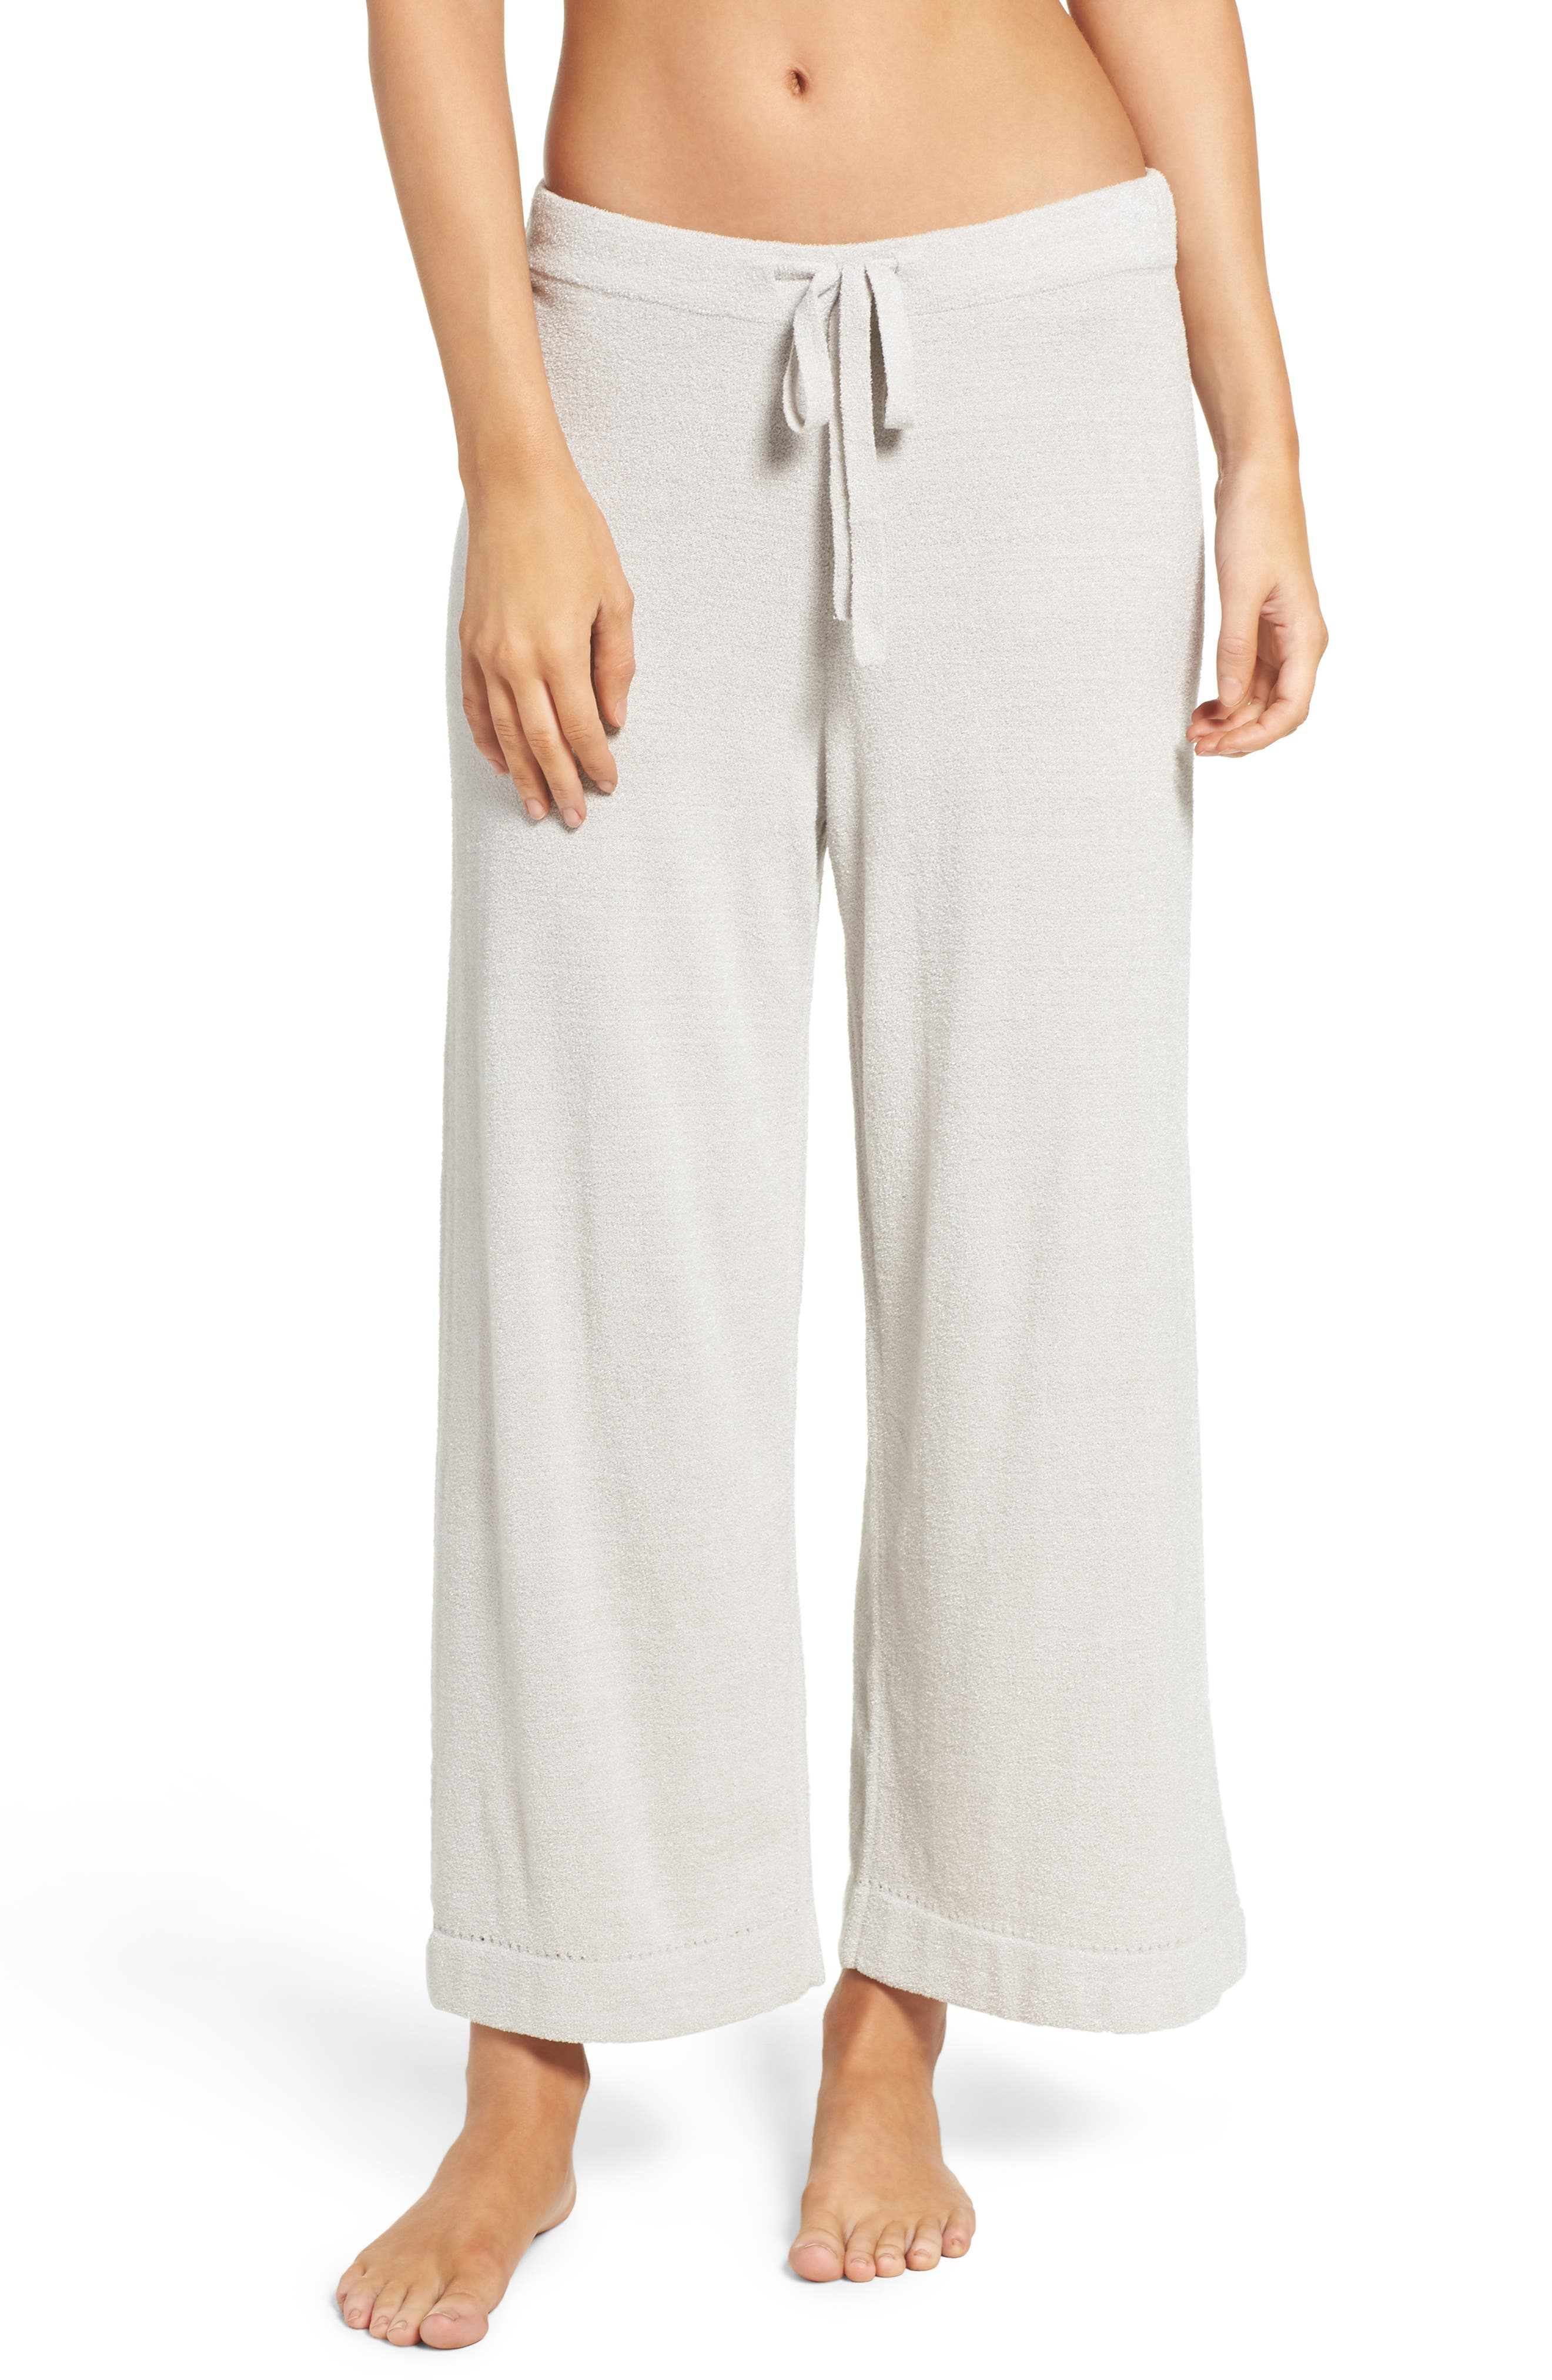 Cozychic Ultra Lite<sup>®</sup> Culotte Lounge Pants,                         Main,                         color, Fog Gray